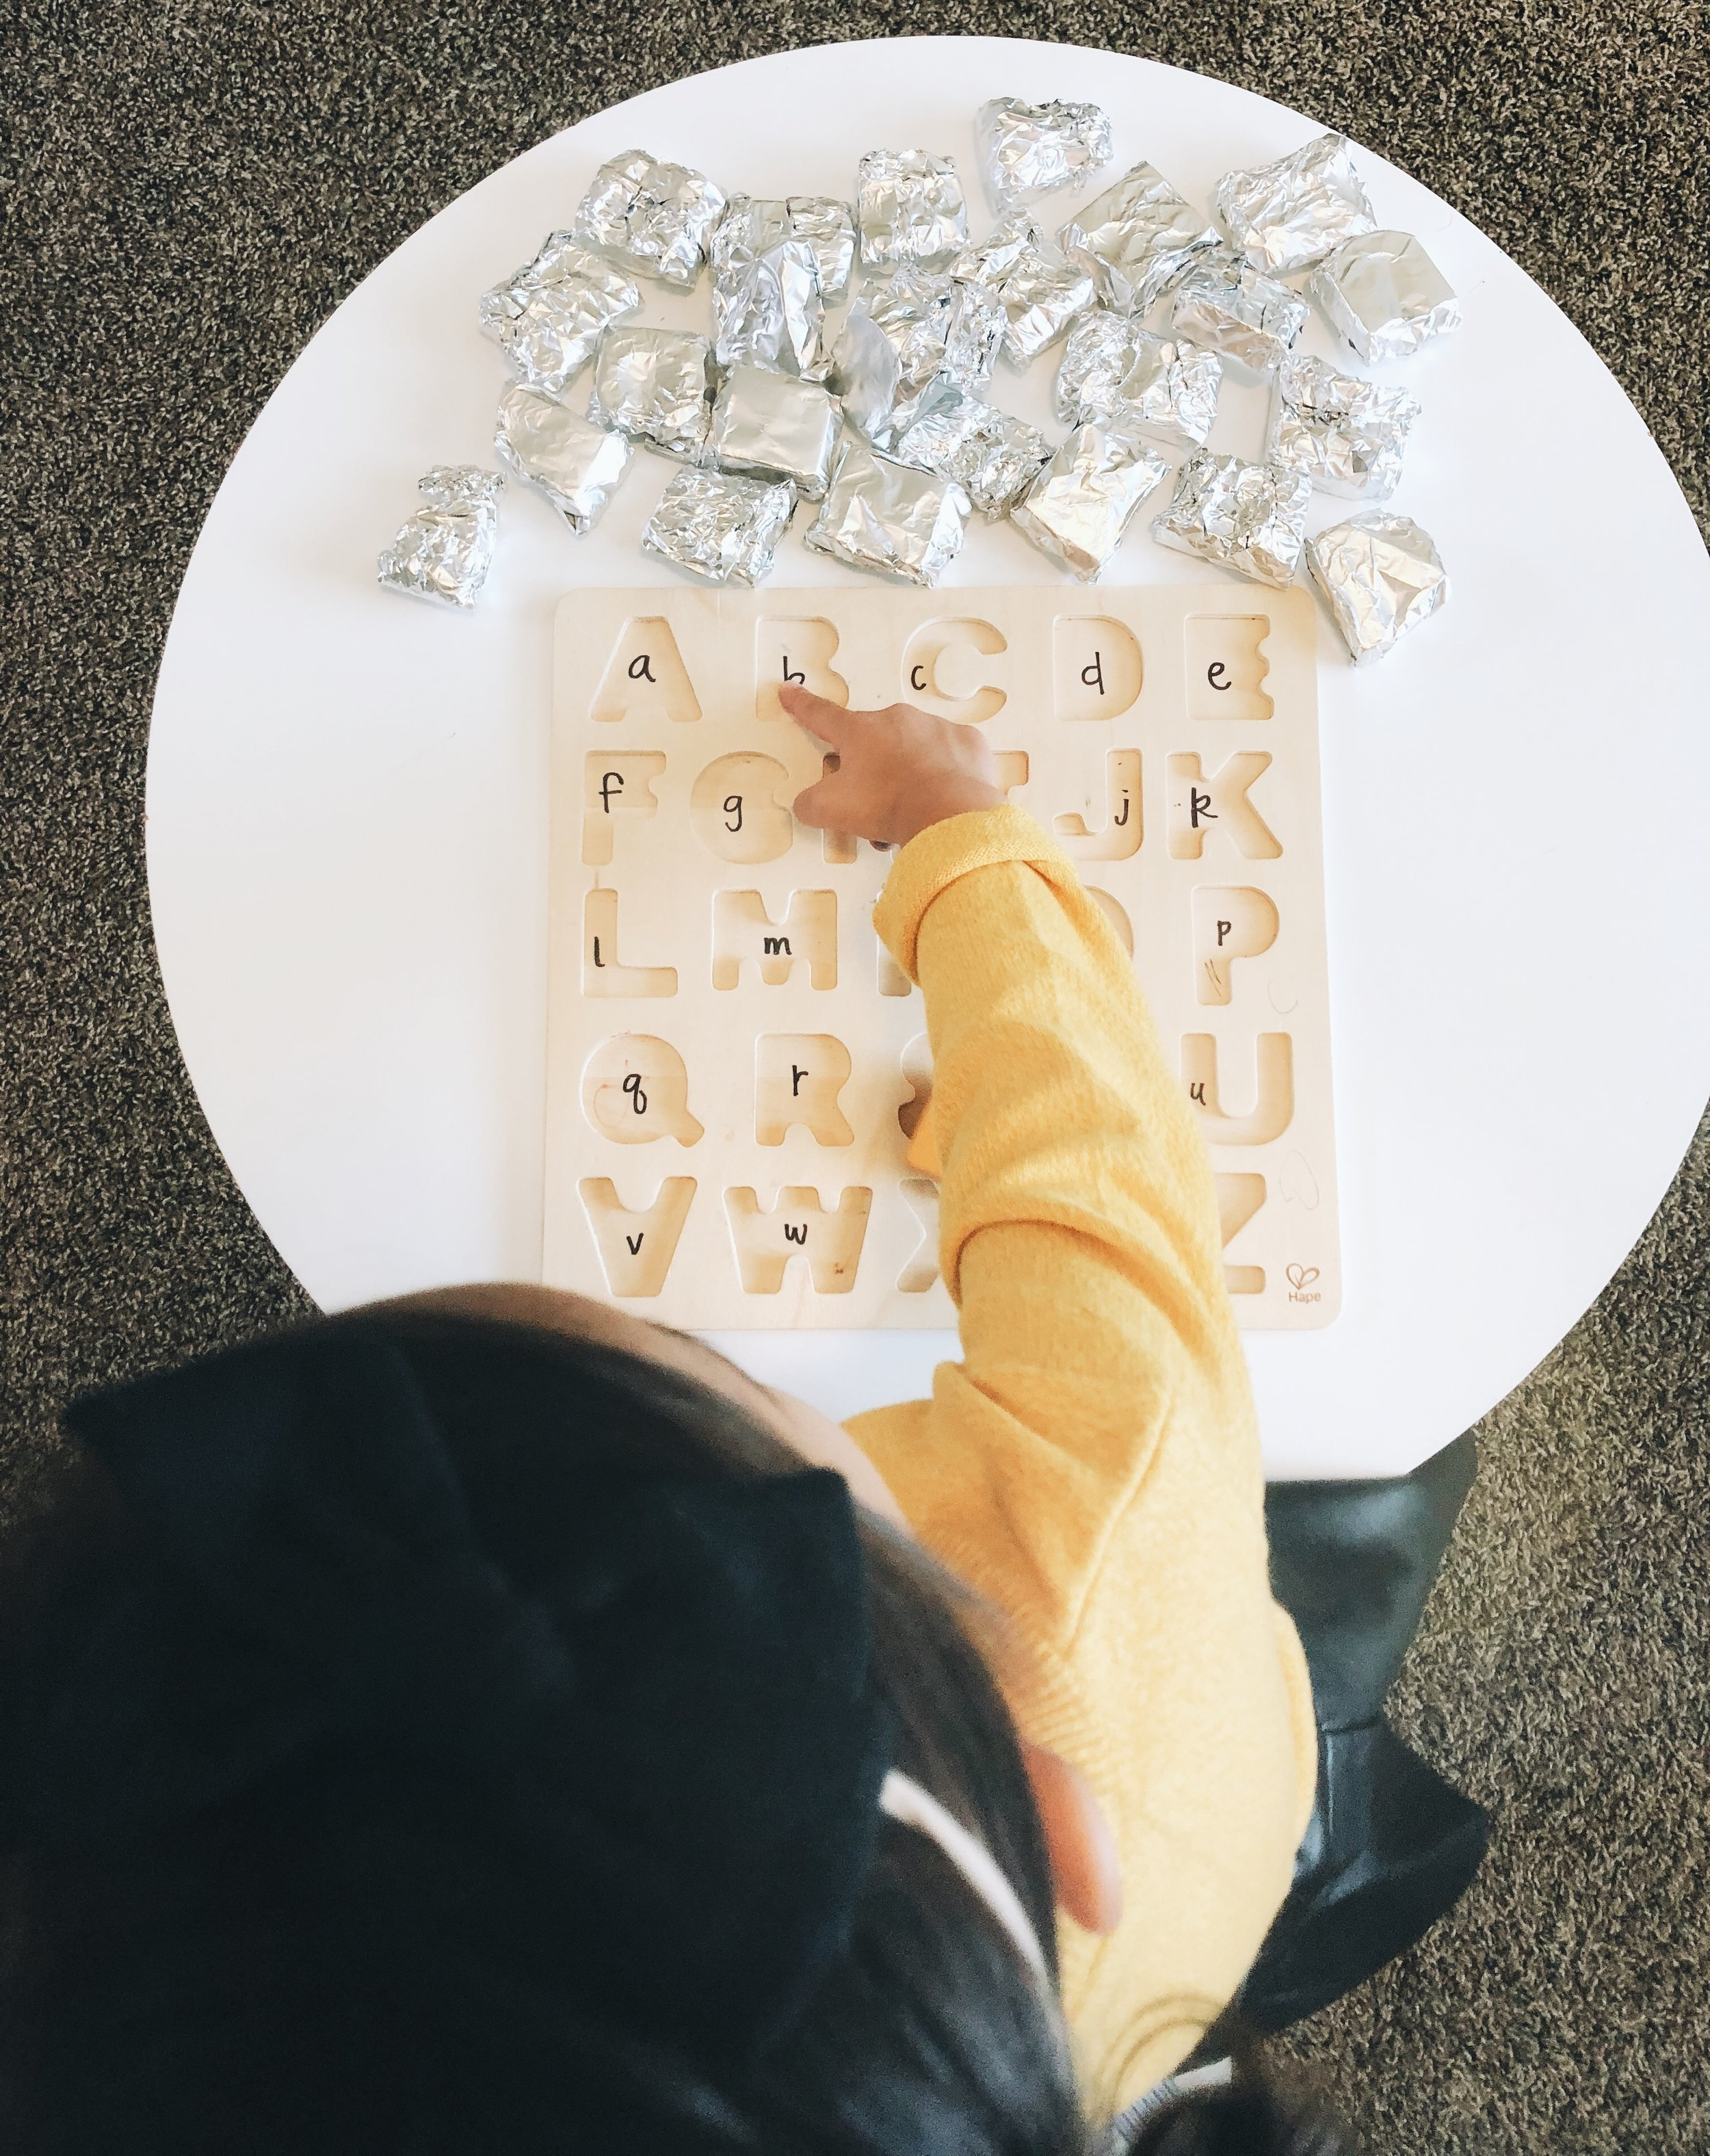 We love our Alphabet puzzle! We are constantly coming up with ways to use it in play! If you currently don't have one, add it to your amazon list ;)